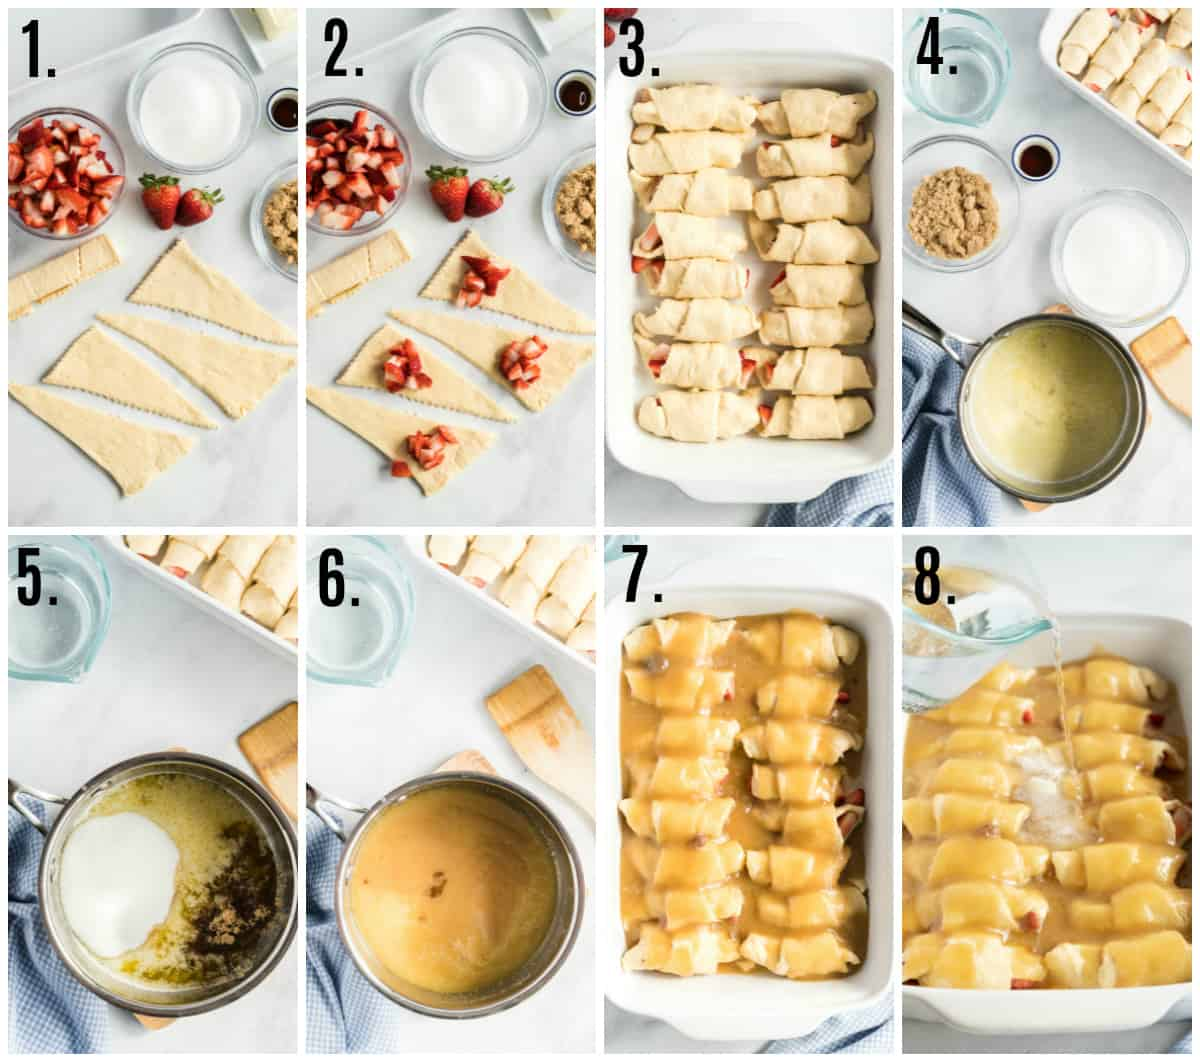 Step by step photos on how to make Strawberry Dumplings